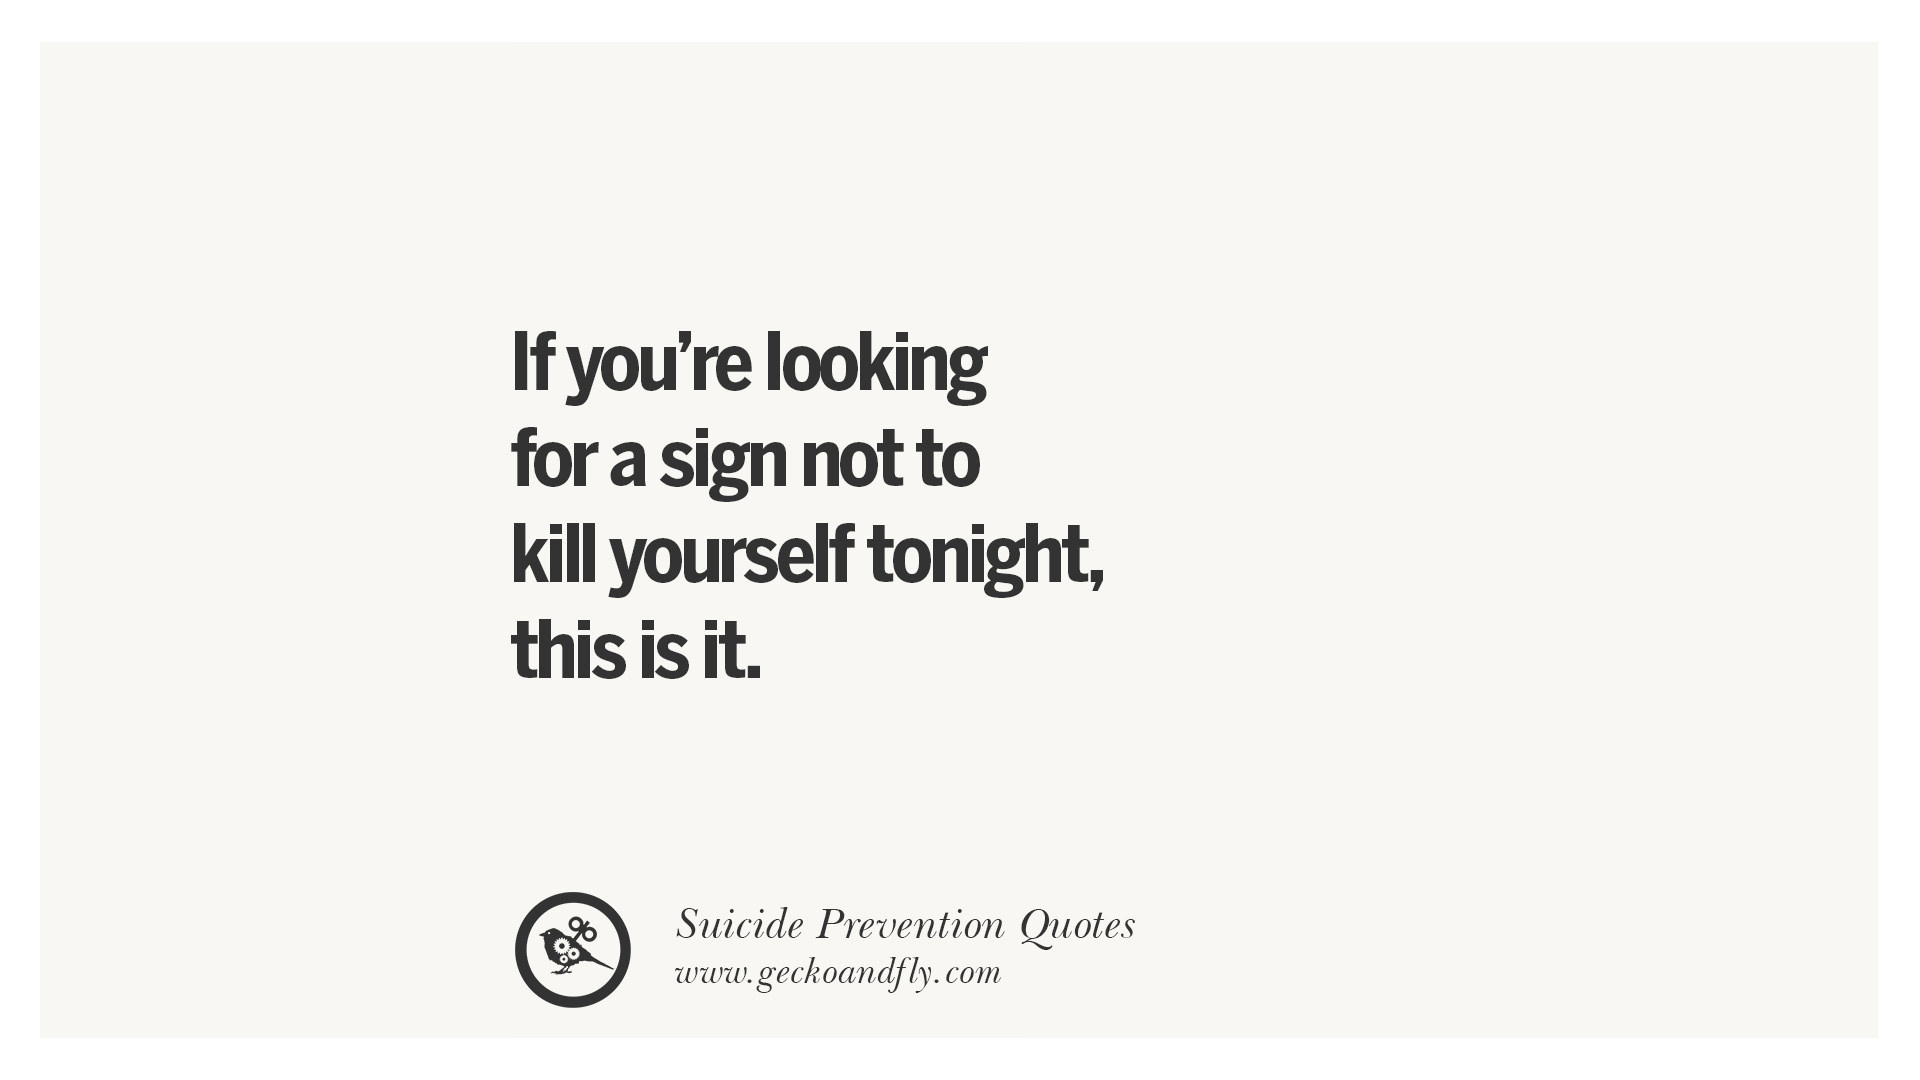 Signs And Sayings Hd Wallpapers 30 Helpful Suicidal Prevention Ideation Thoughts And Quotes